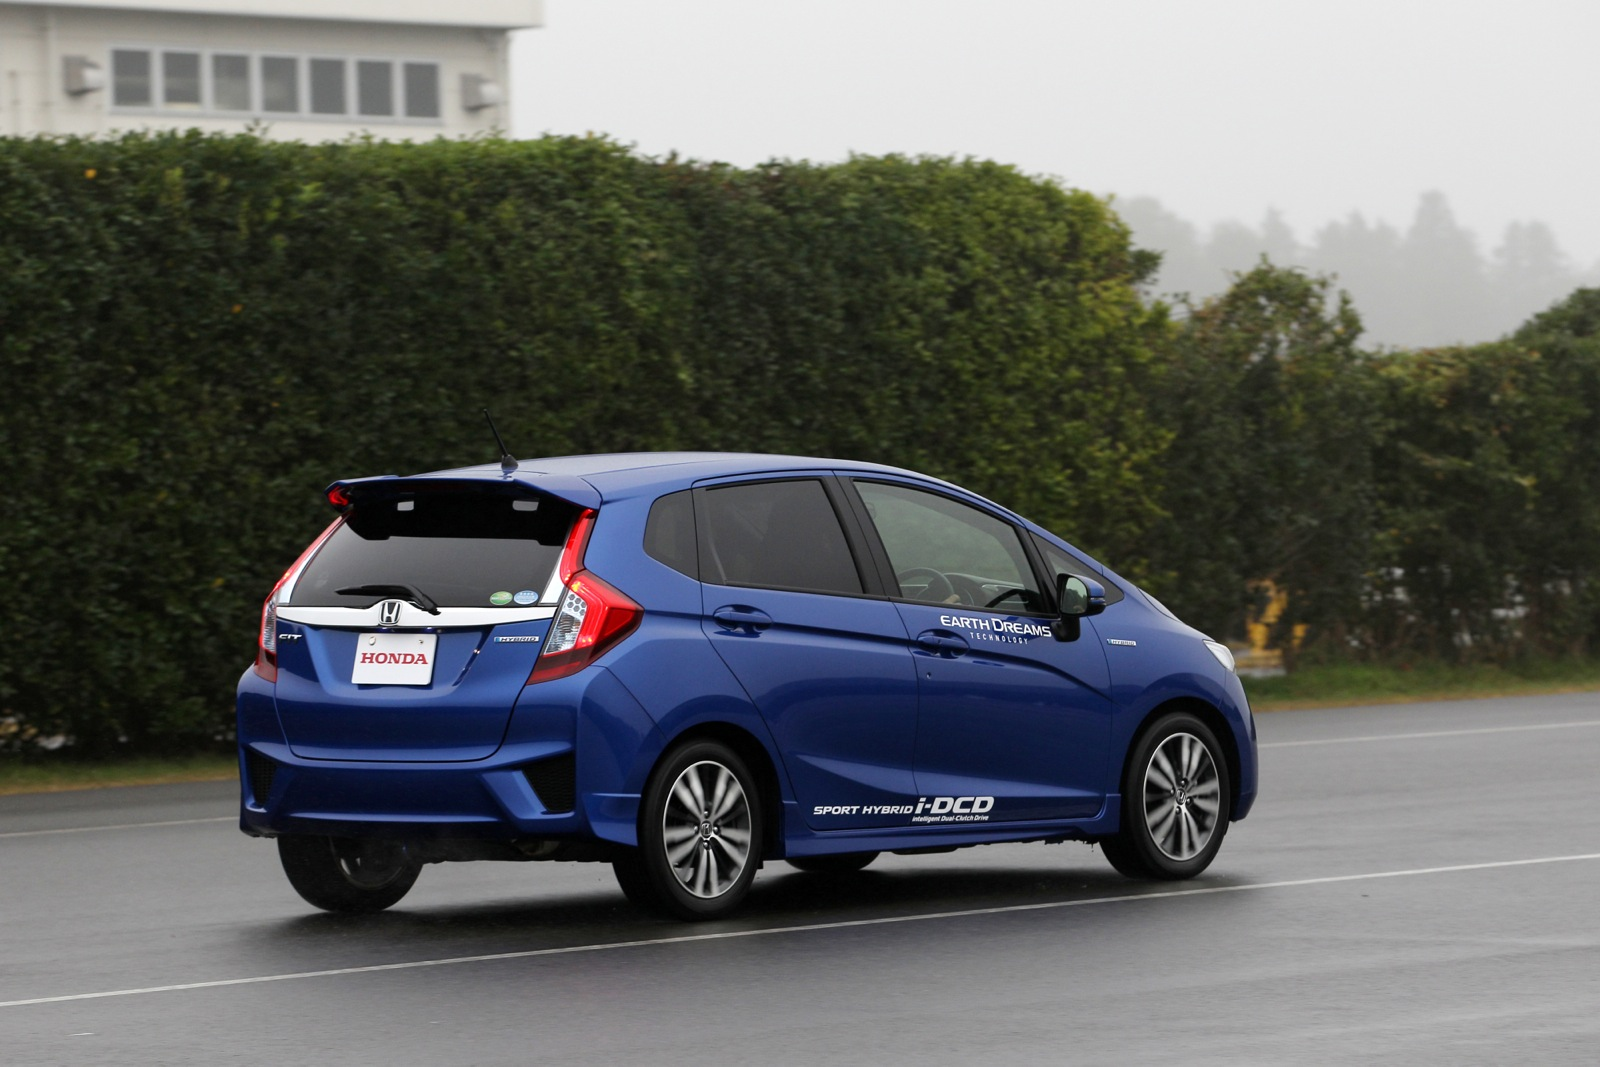 Honda Jazz Used Car Review 2014 Honda Jazz Review Photos Caradvice